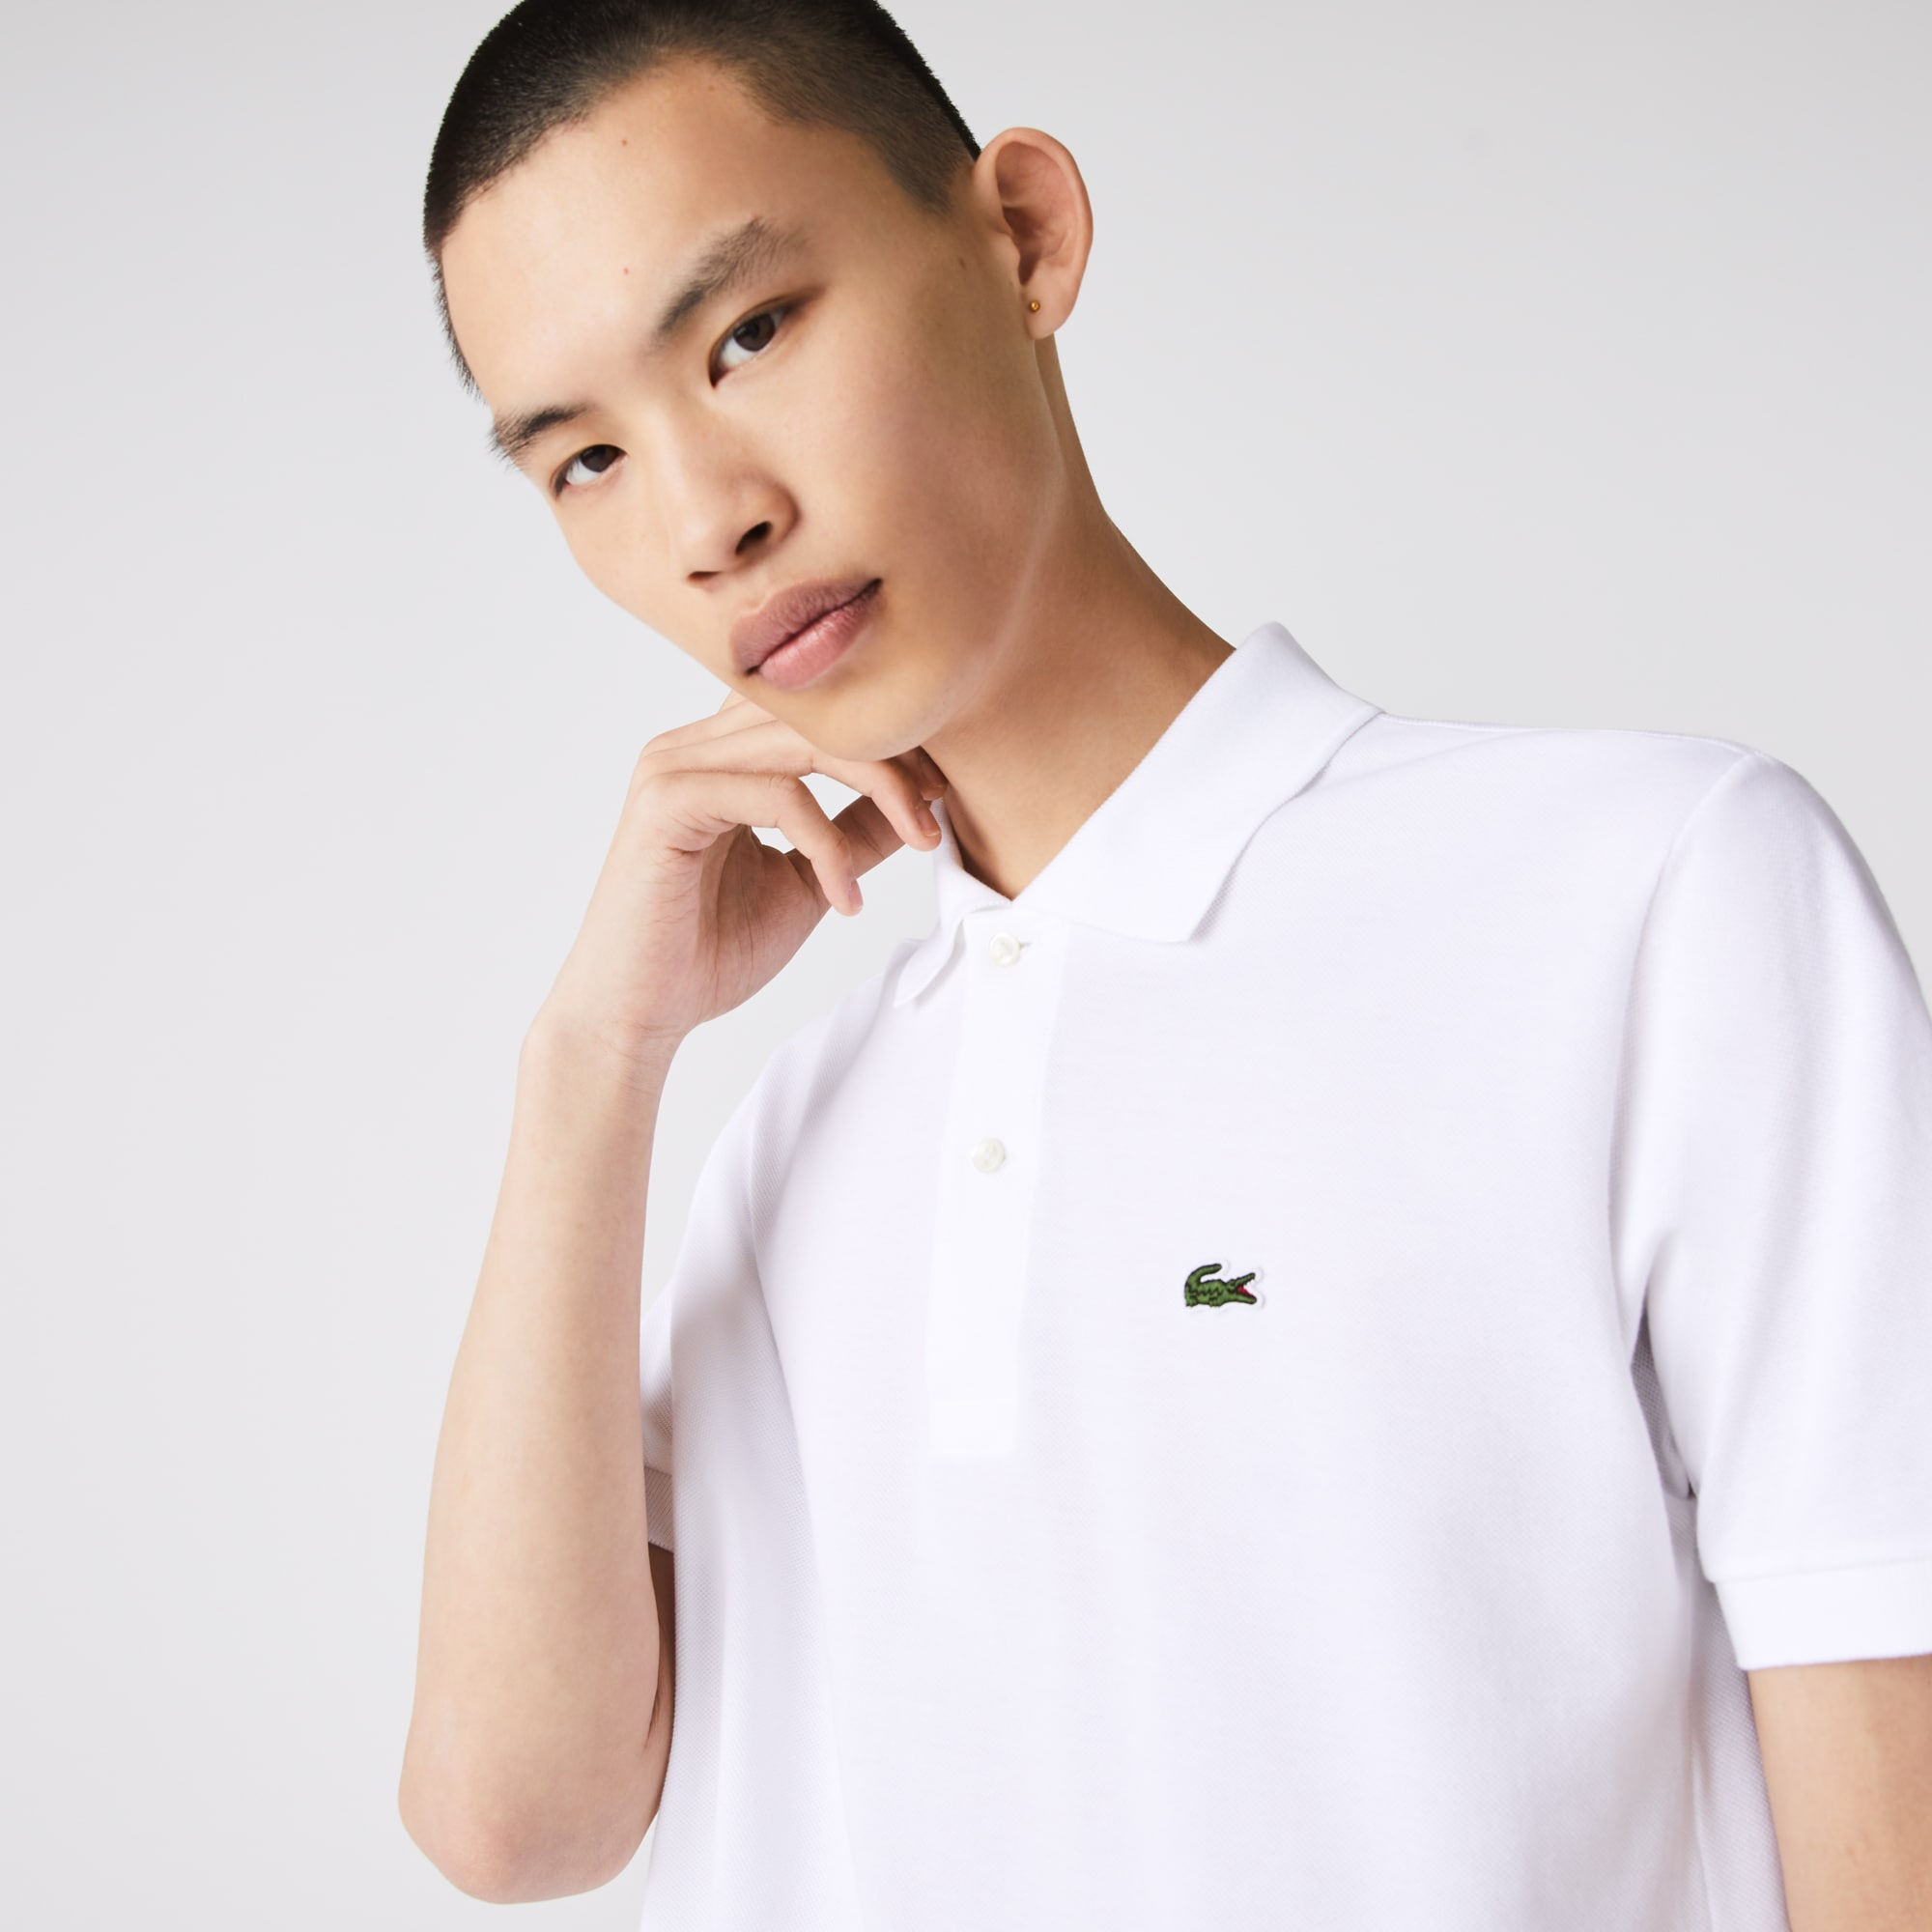 Men's Clothing | Lacoste Polos, Shirts, Pants and Sportswear